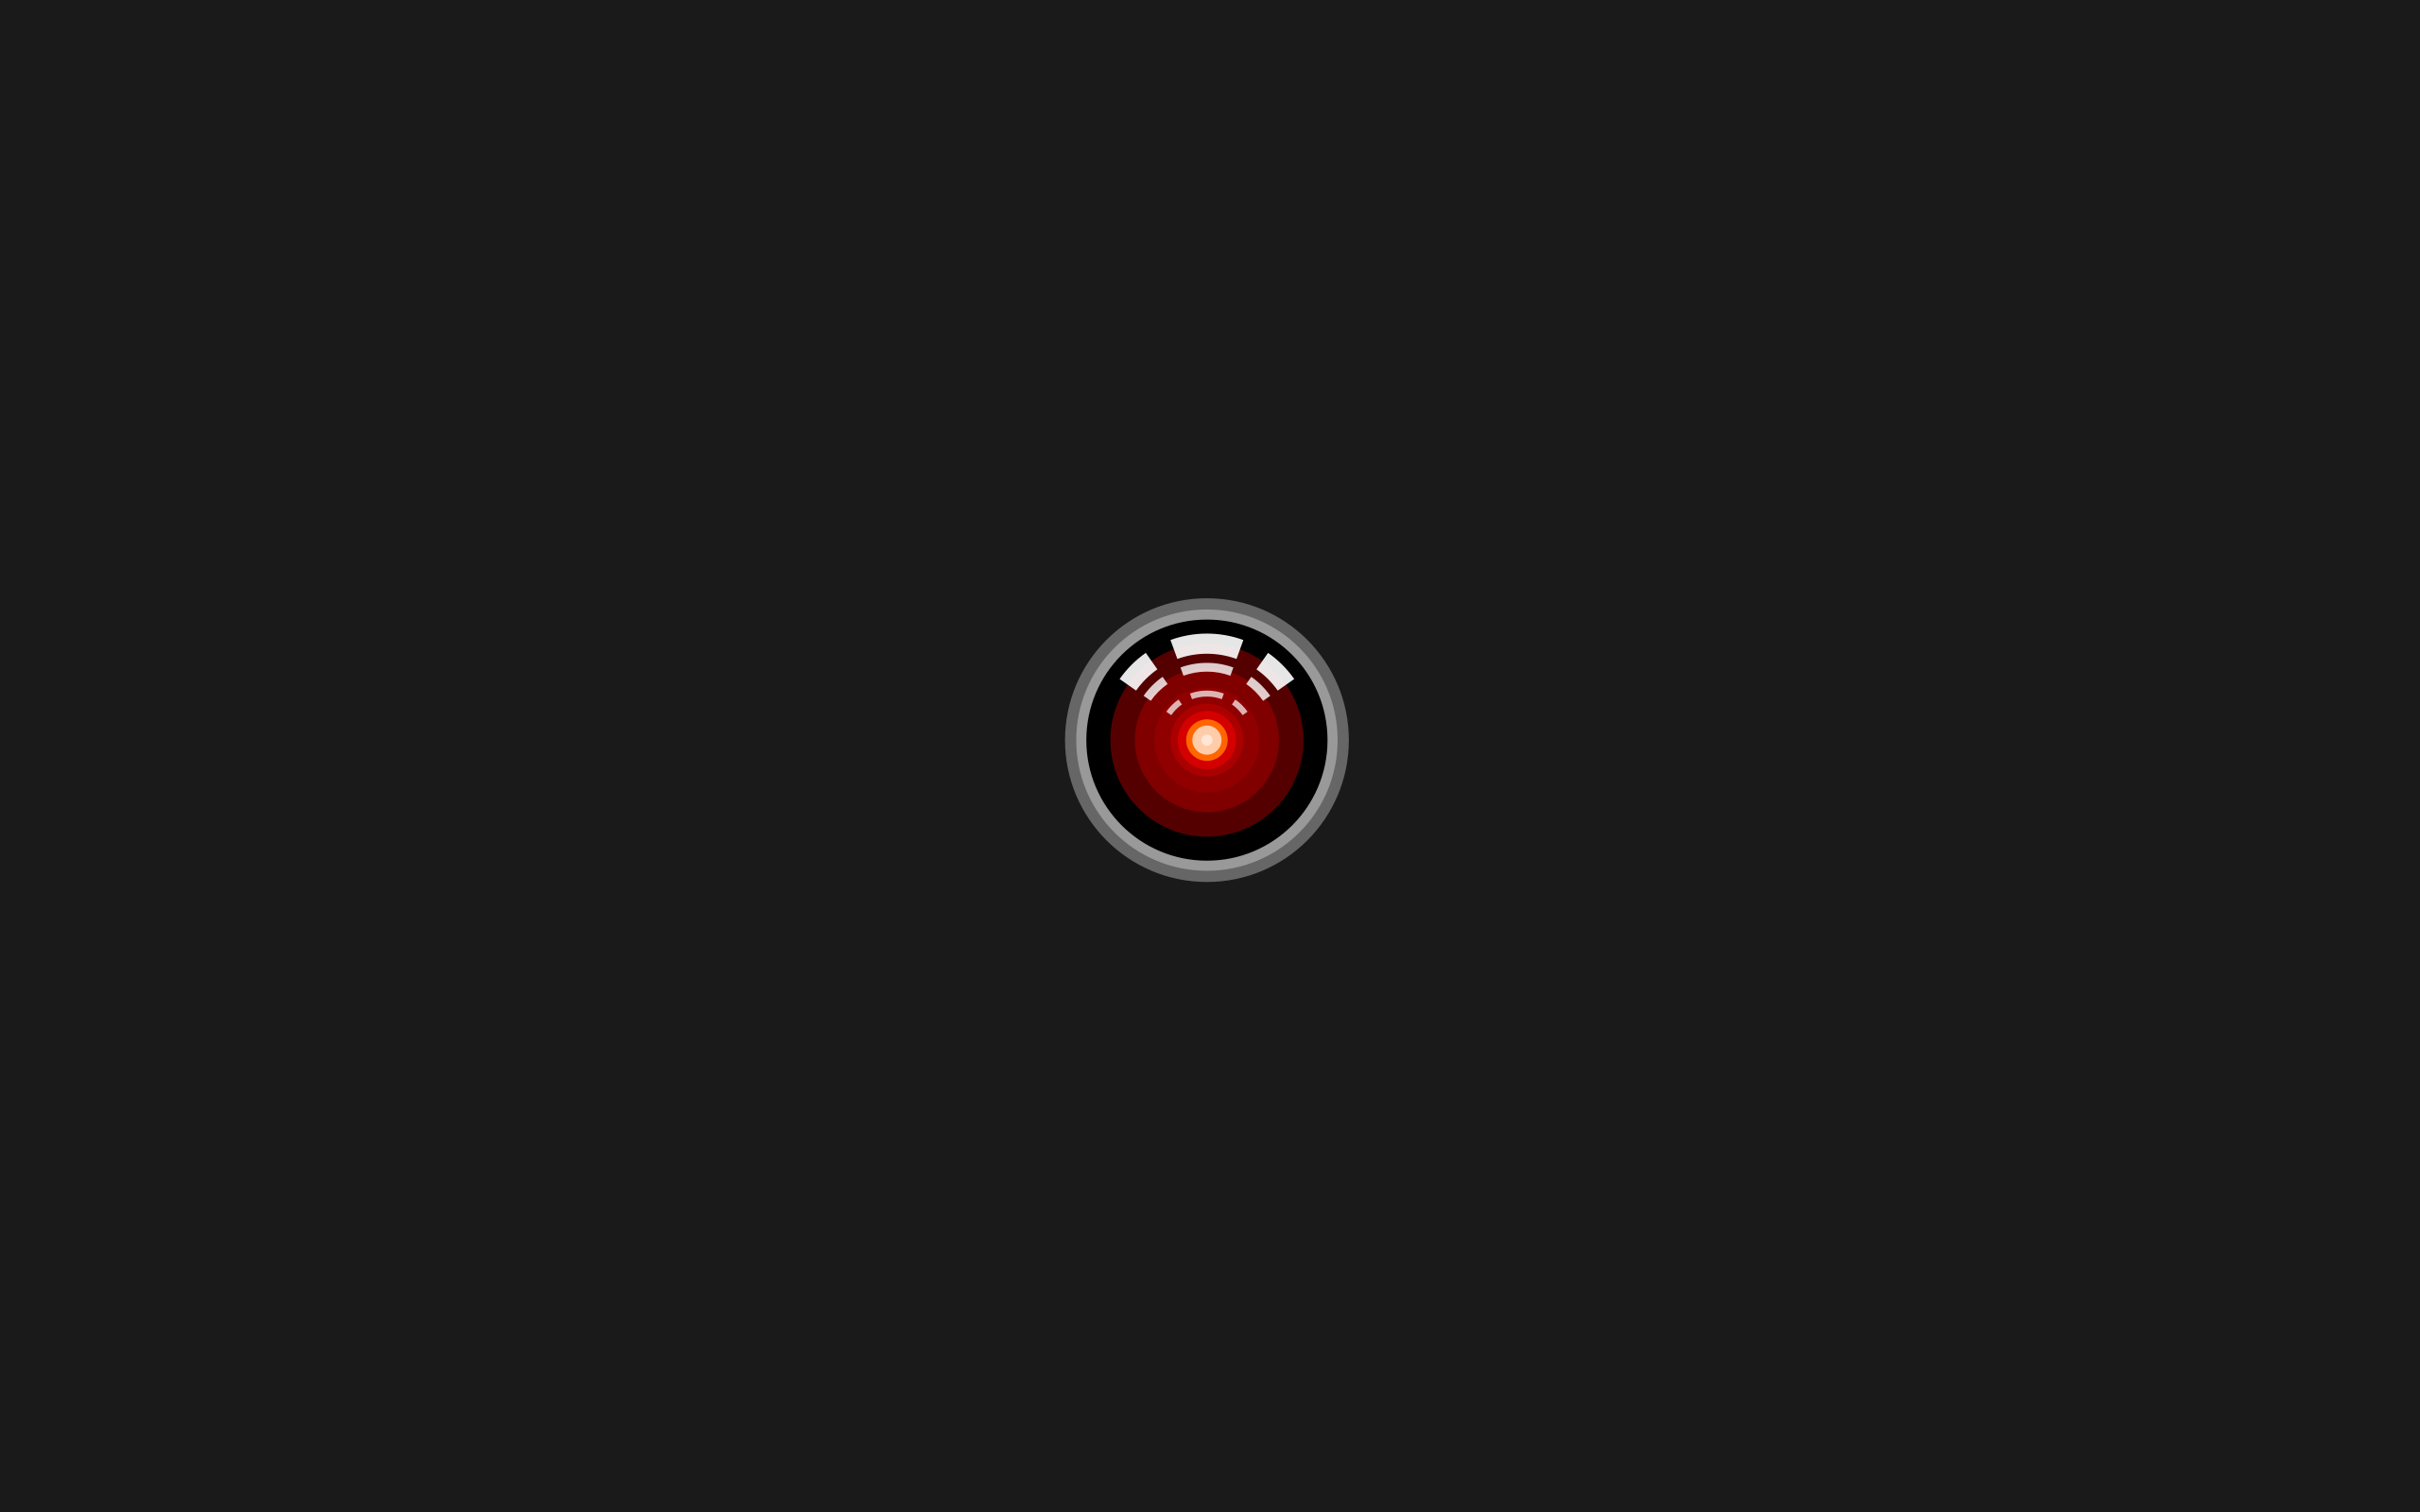 Hal 9000 wallpaper windows 8 wallpapersafari - 2001 a space odyssey wallpaper ...